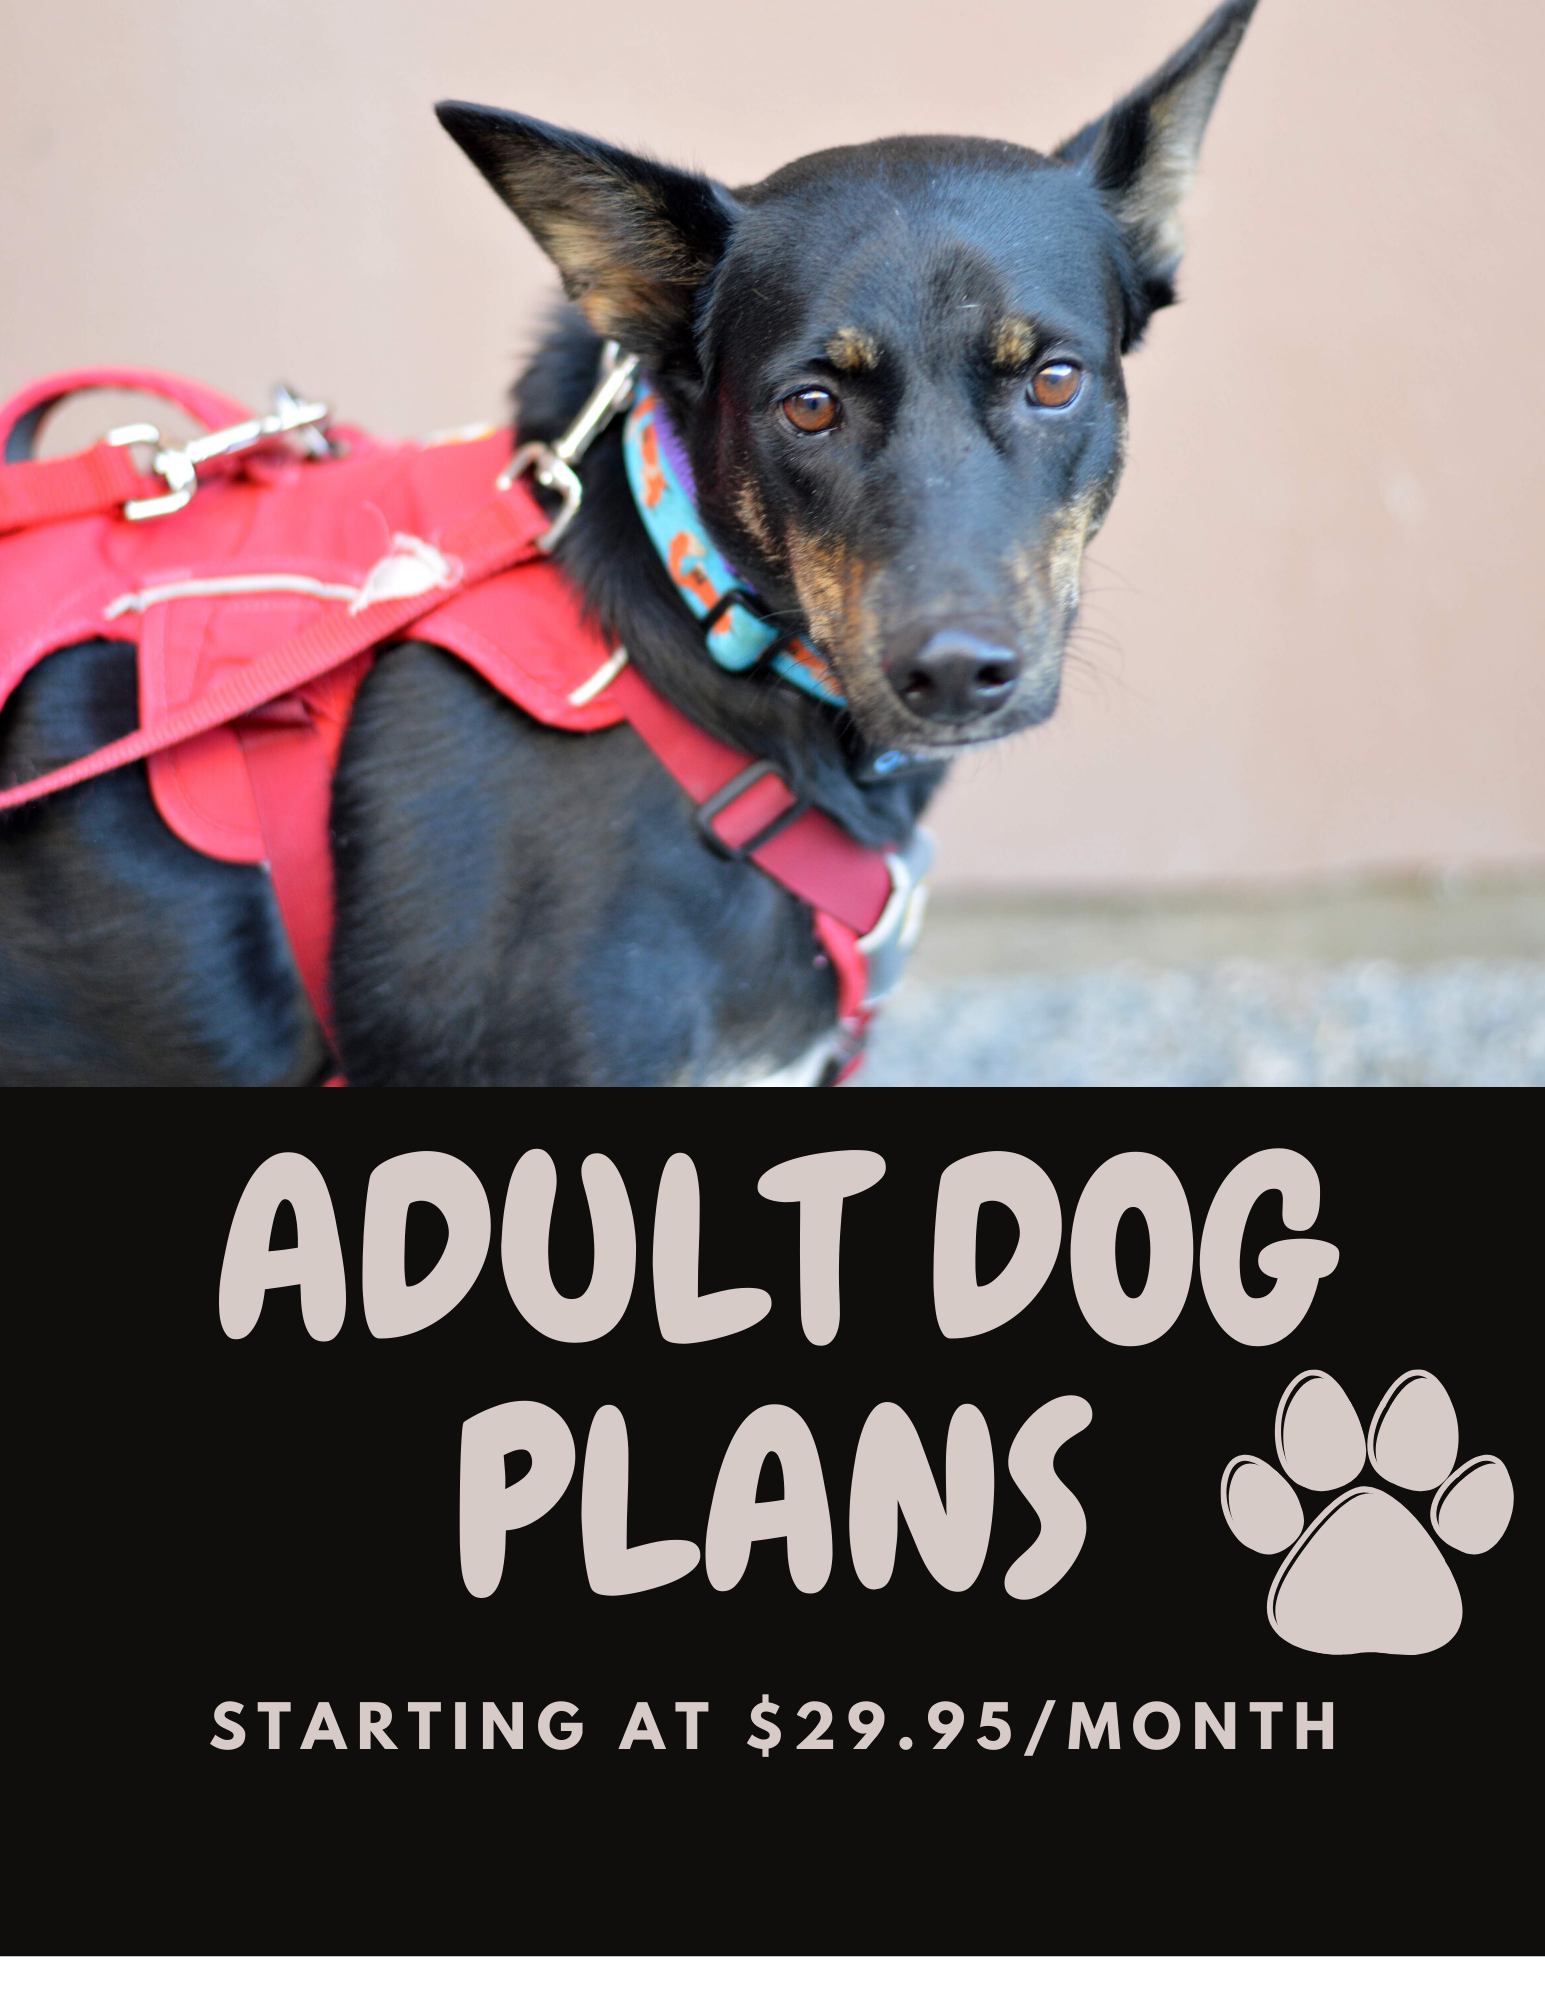 ADULT DOG PLANS WEBSITE